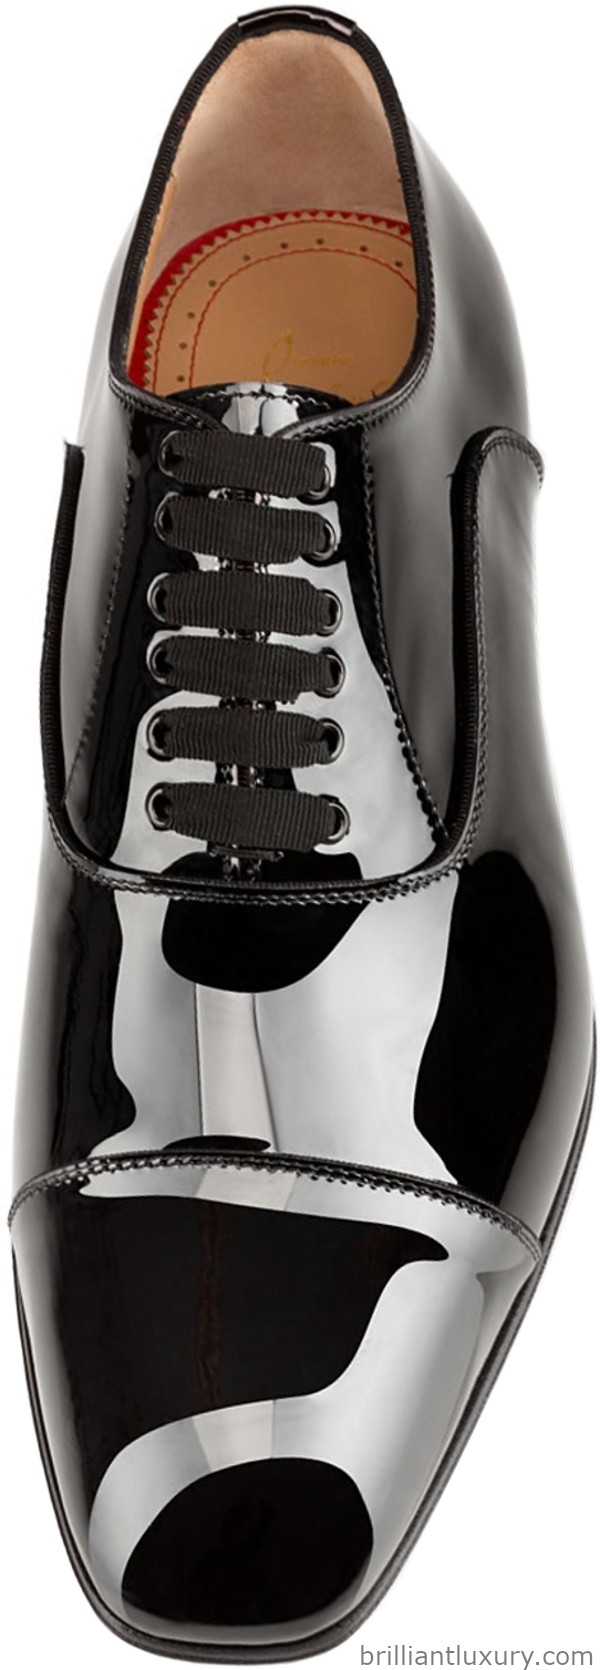 Christian Louboutin Greggo oxford flat in black patent leather